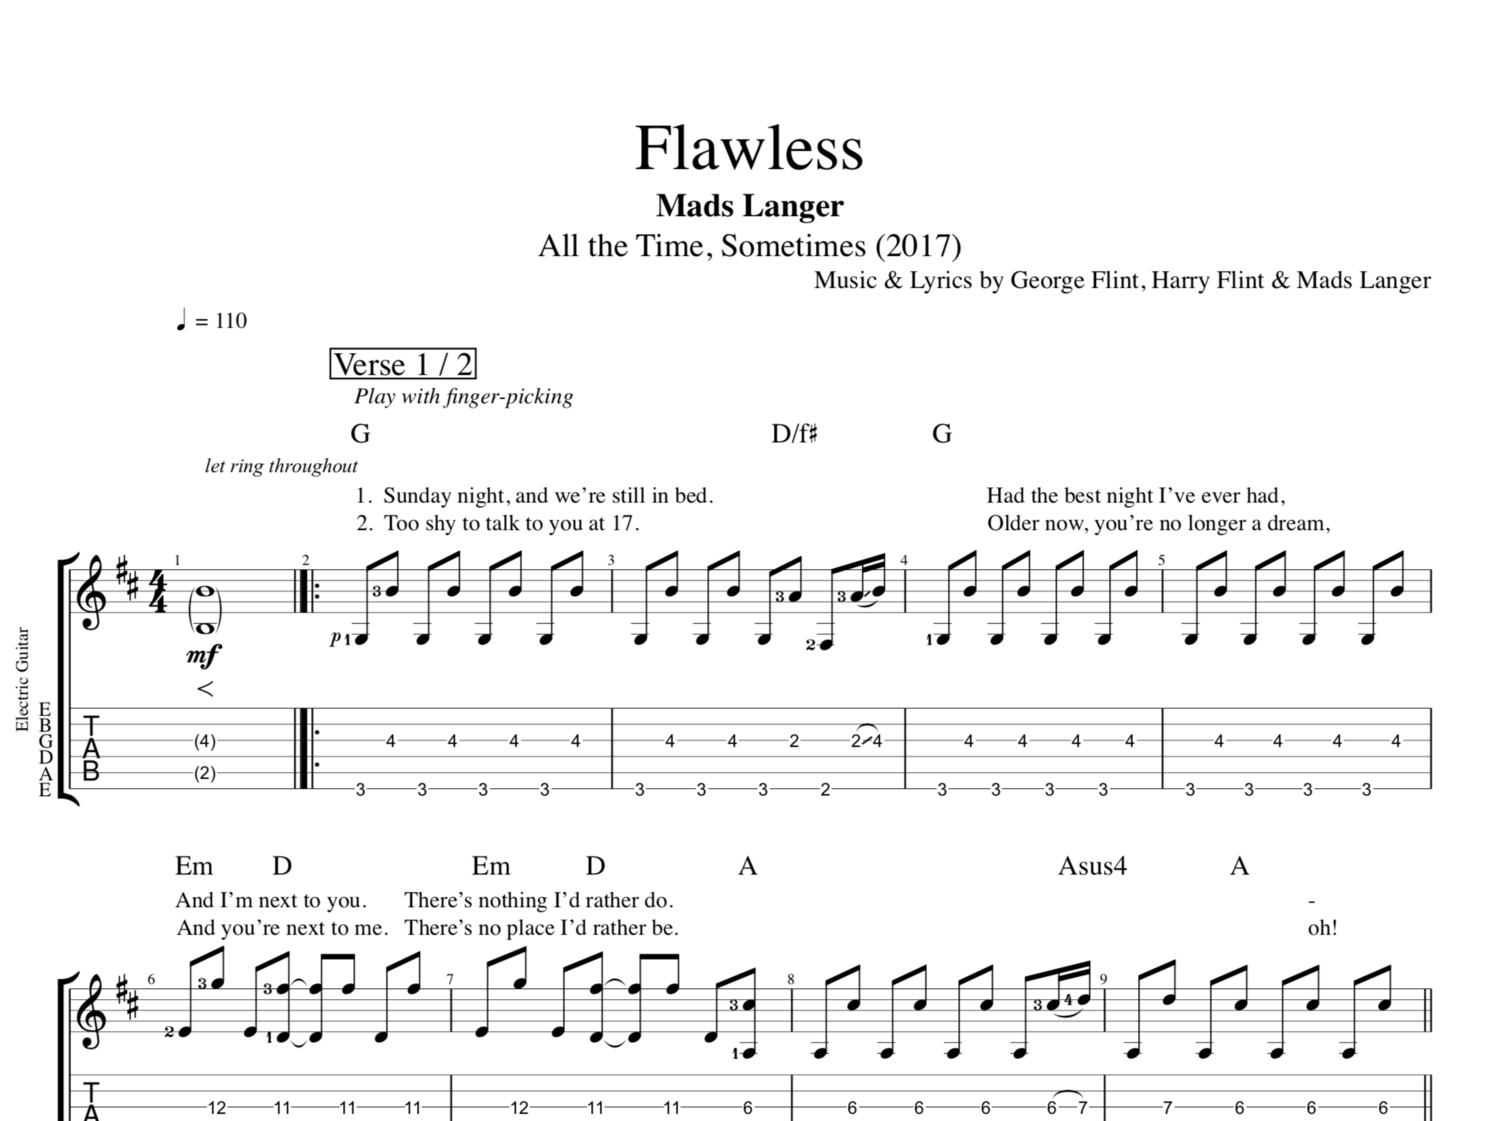 Flawless By Mads Langer Guitar Tabs Chords Sheet Music